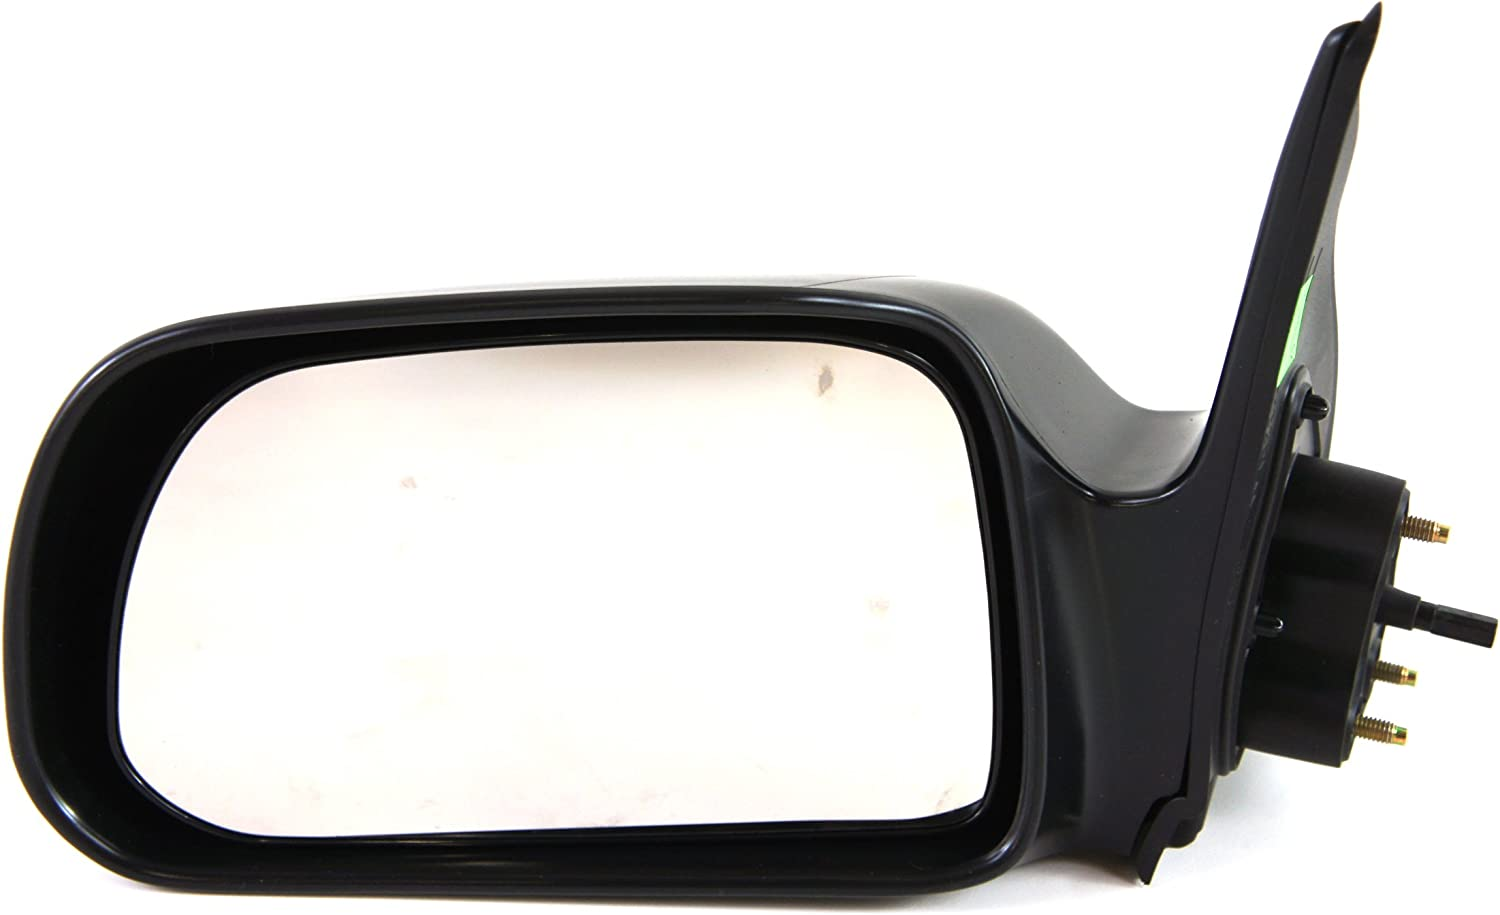 Genuine Toyota 87940-08041 Rear View Mirror Assembly